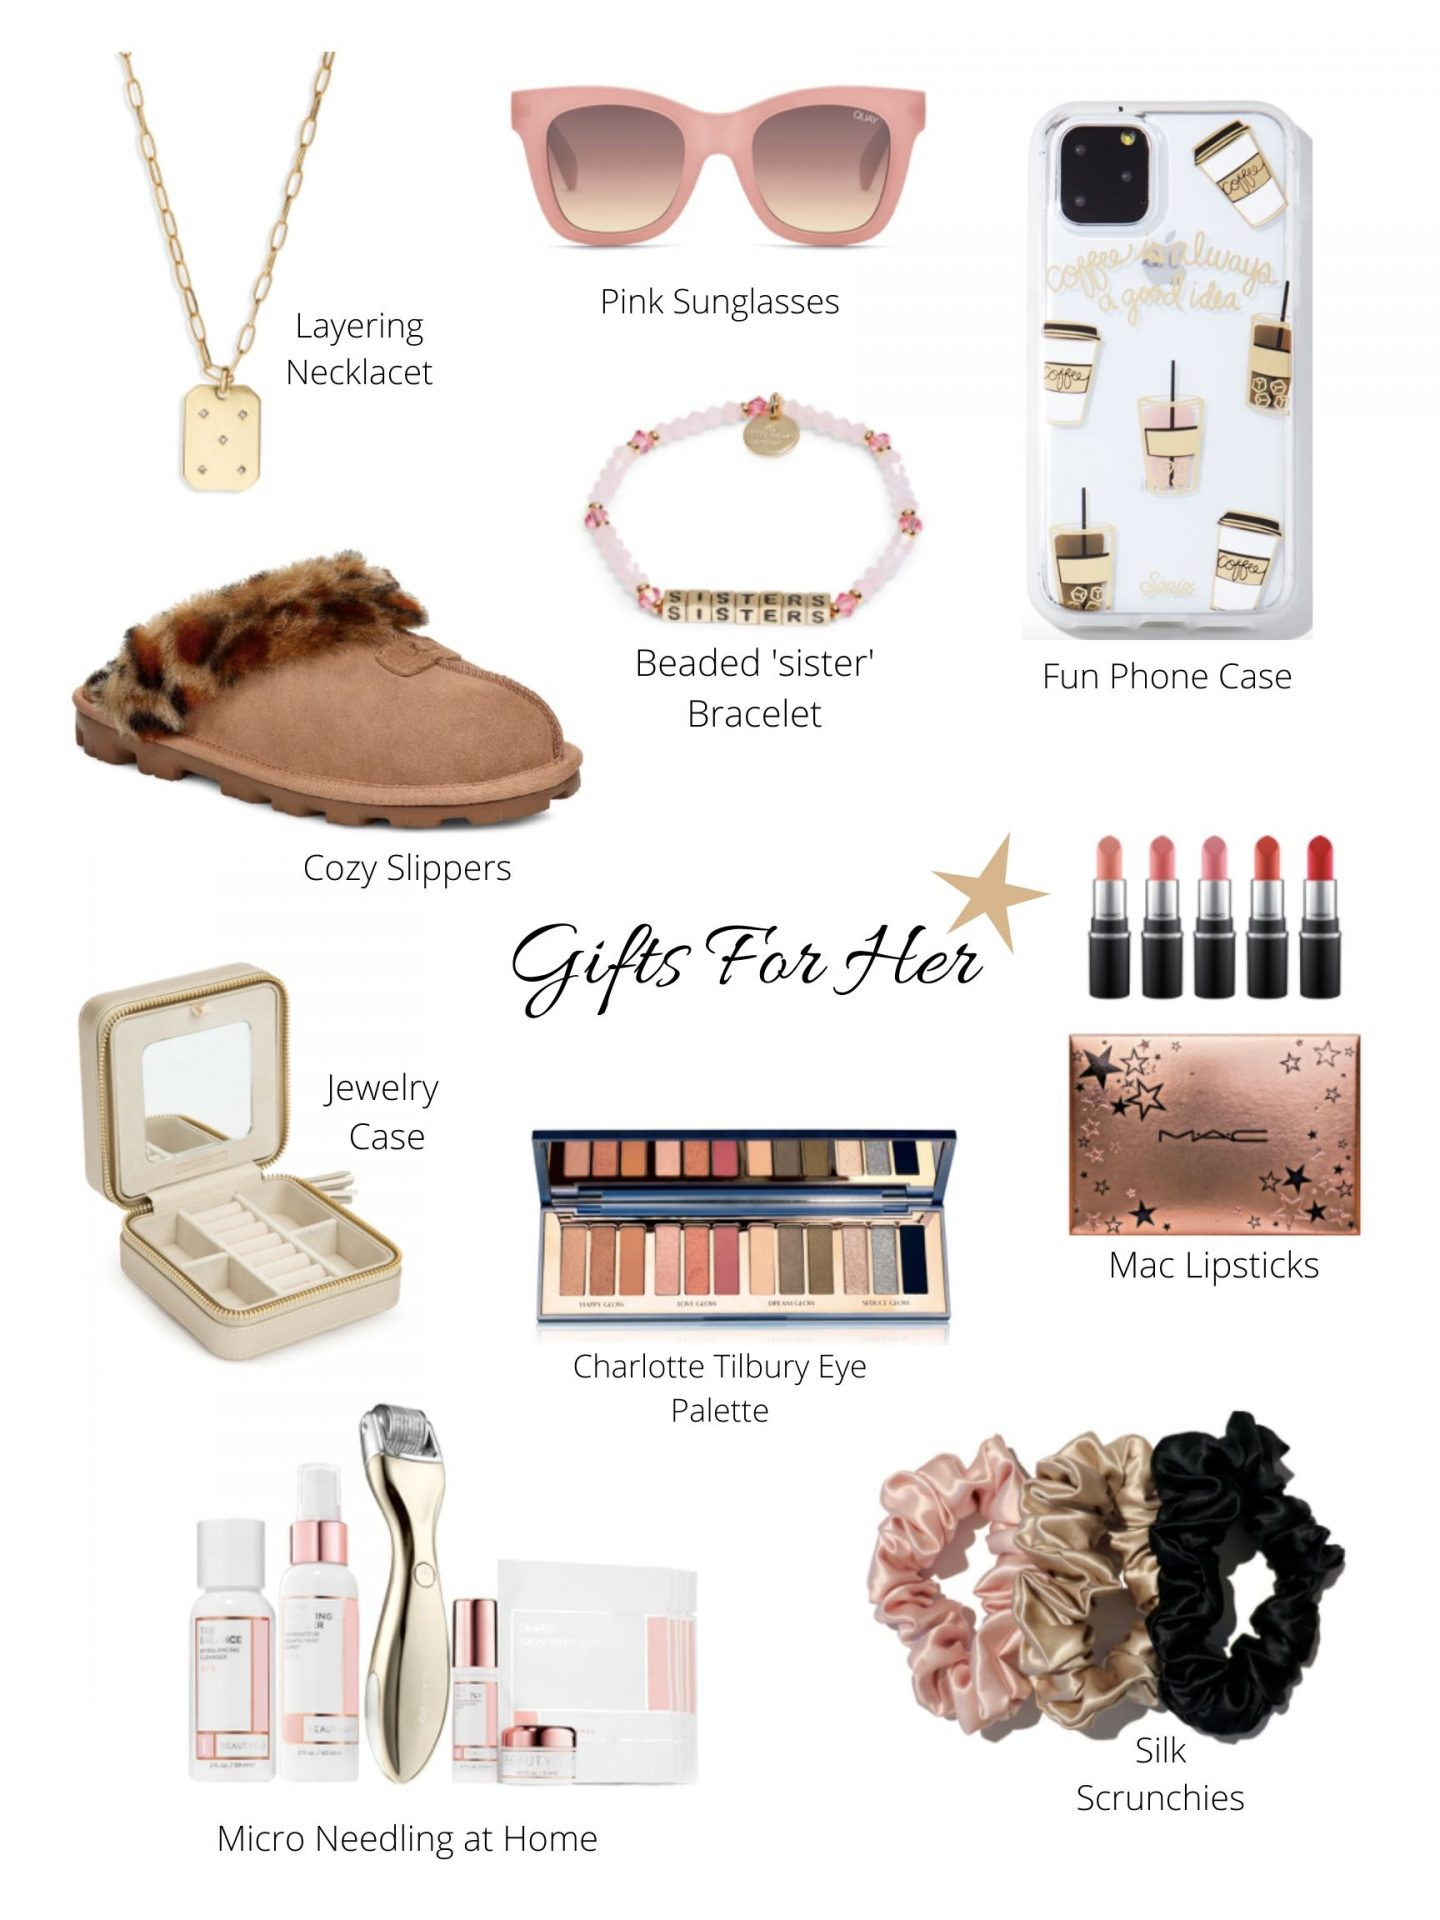 gift ideas for her | gift ideas for sisters, best friends, co-workers, cousins and all other ladies in your life.